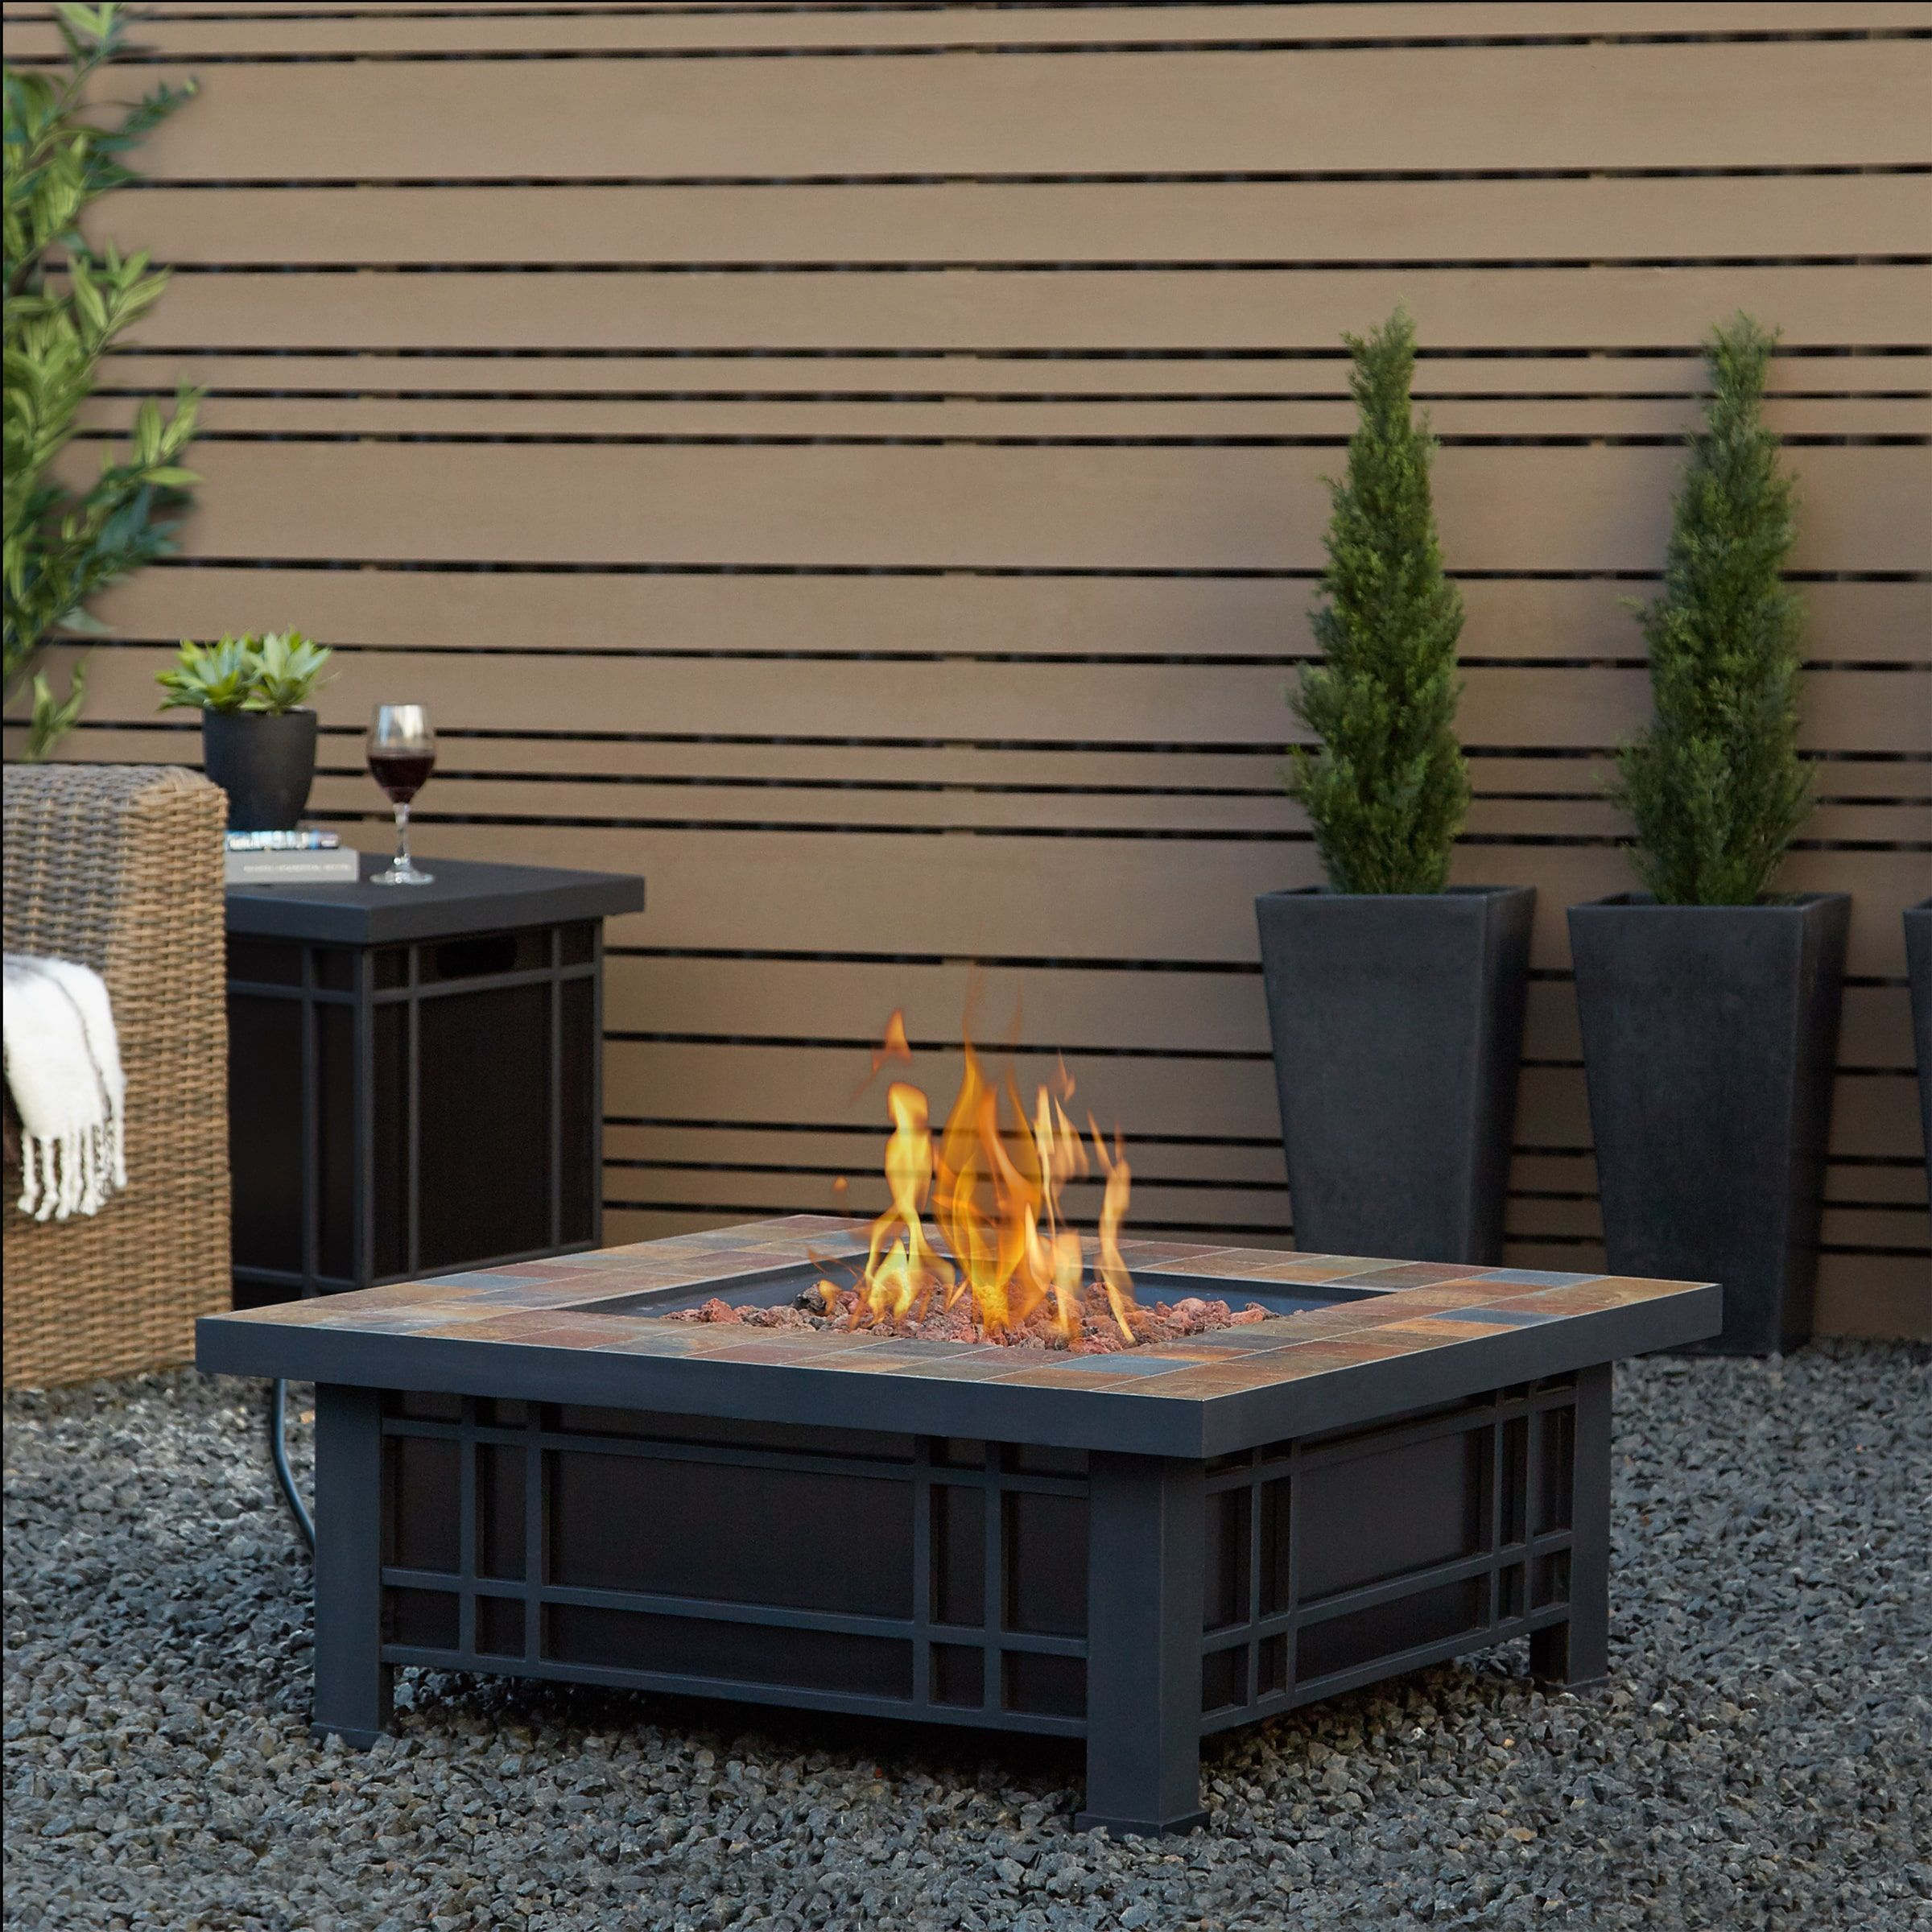 337afd535700f2c3a35a4c6c8eed8ad2 Top Result 50 Awesome Large Propane Fire Pit Photography 2018 Gst3